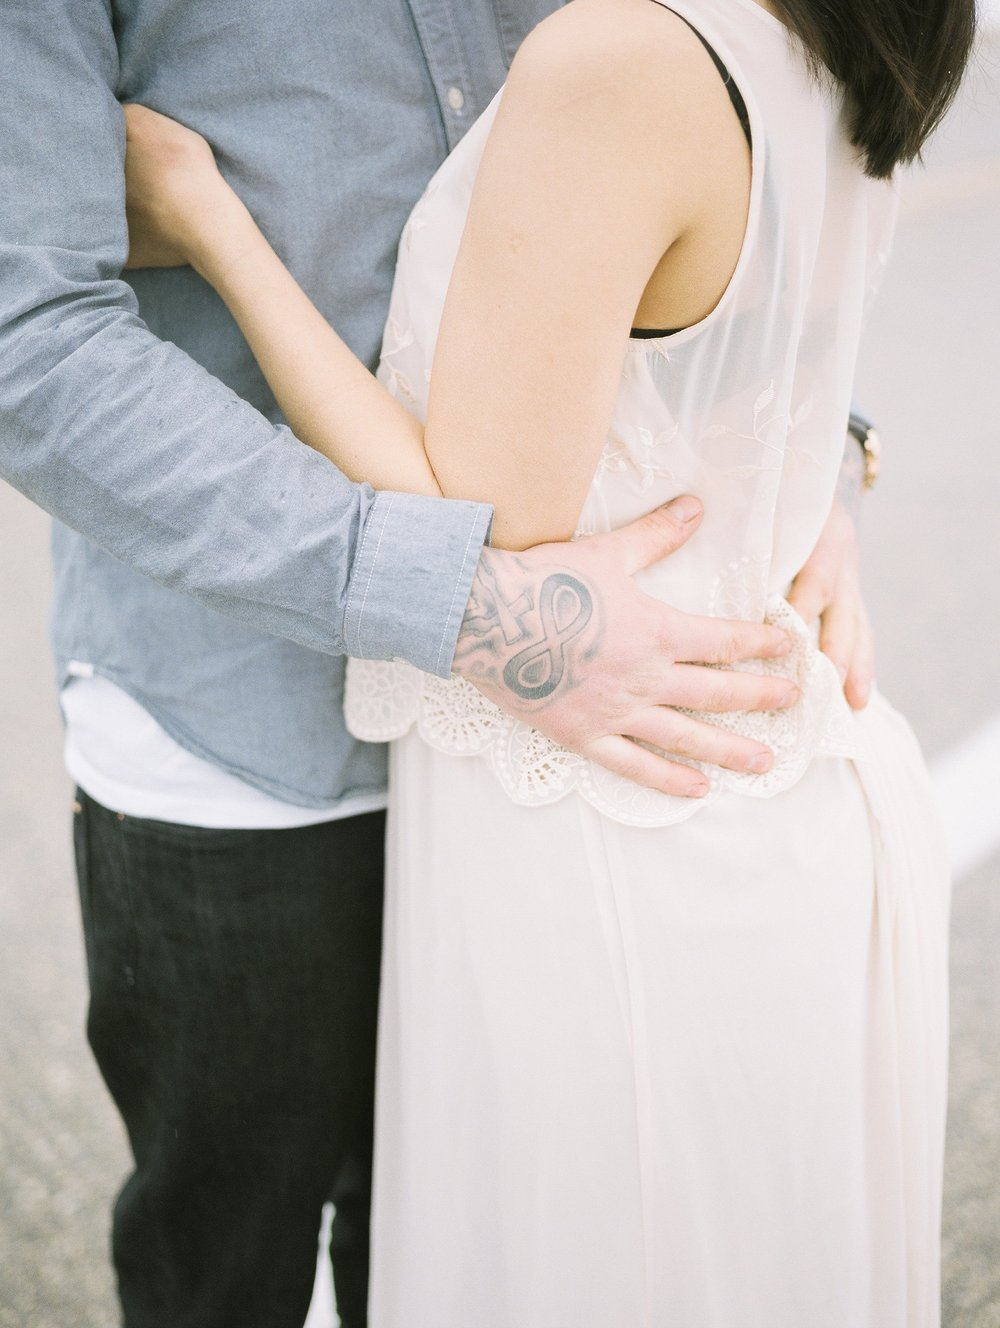 Tattooed couples | engagement session inspiration | Keila Marie Photography based in Manitoba Canada